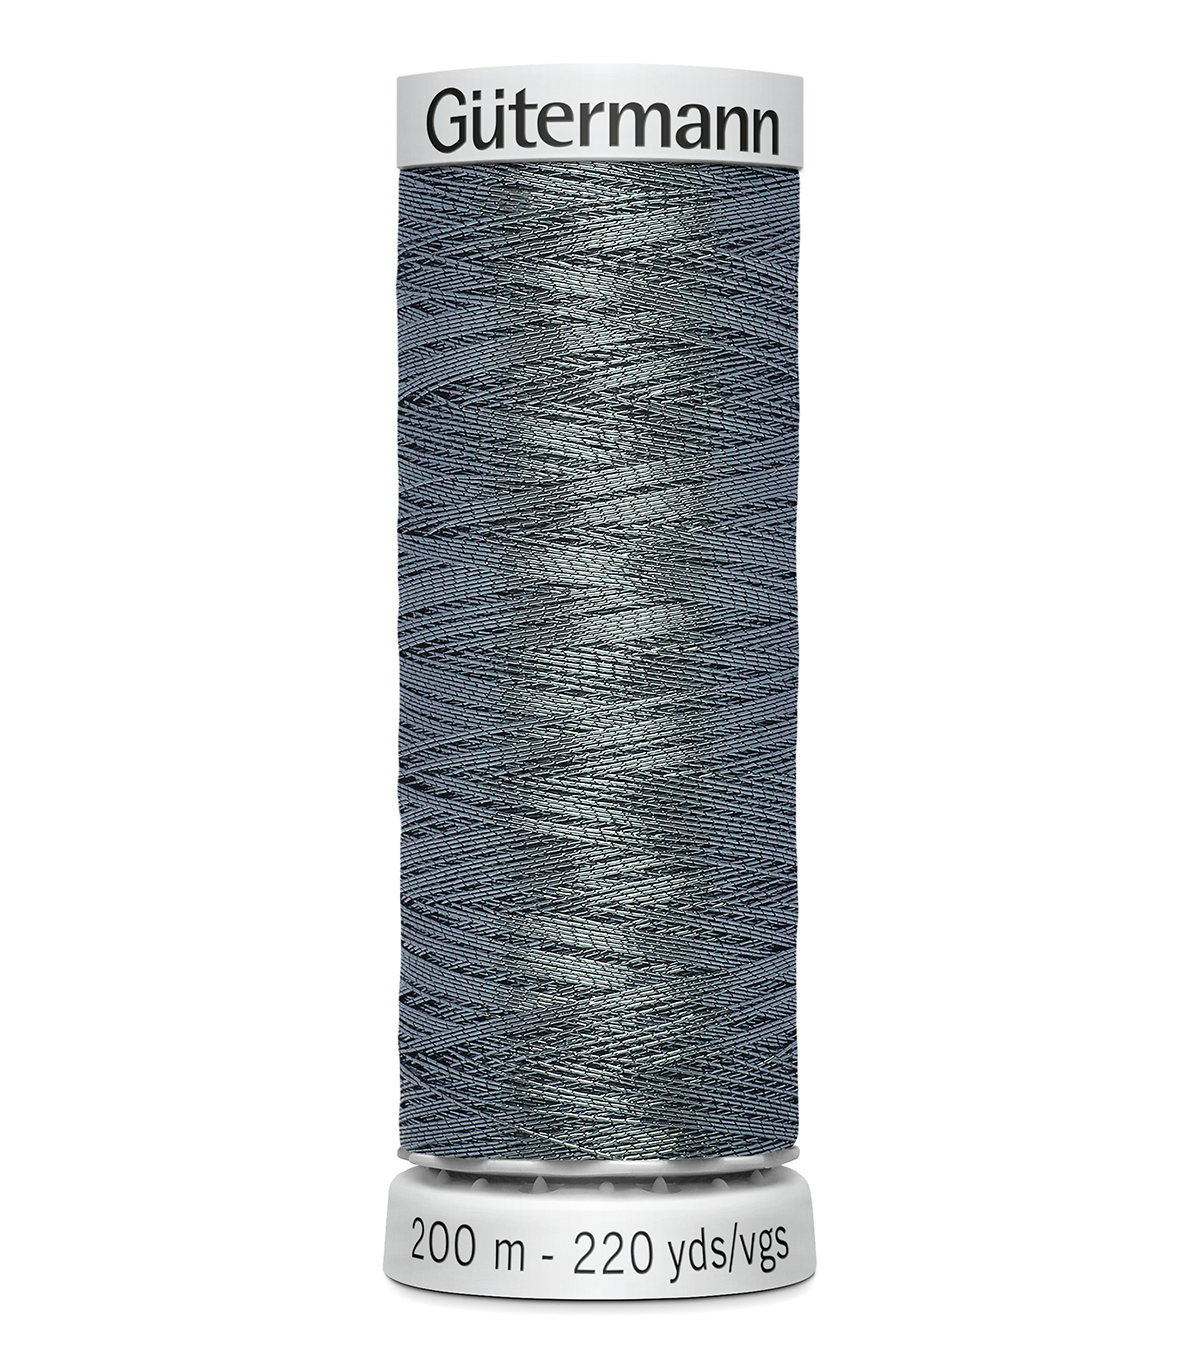 Gutermann 200M Dekor Thread, 200m Dekor Metallic-grey